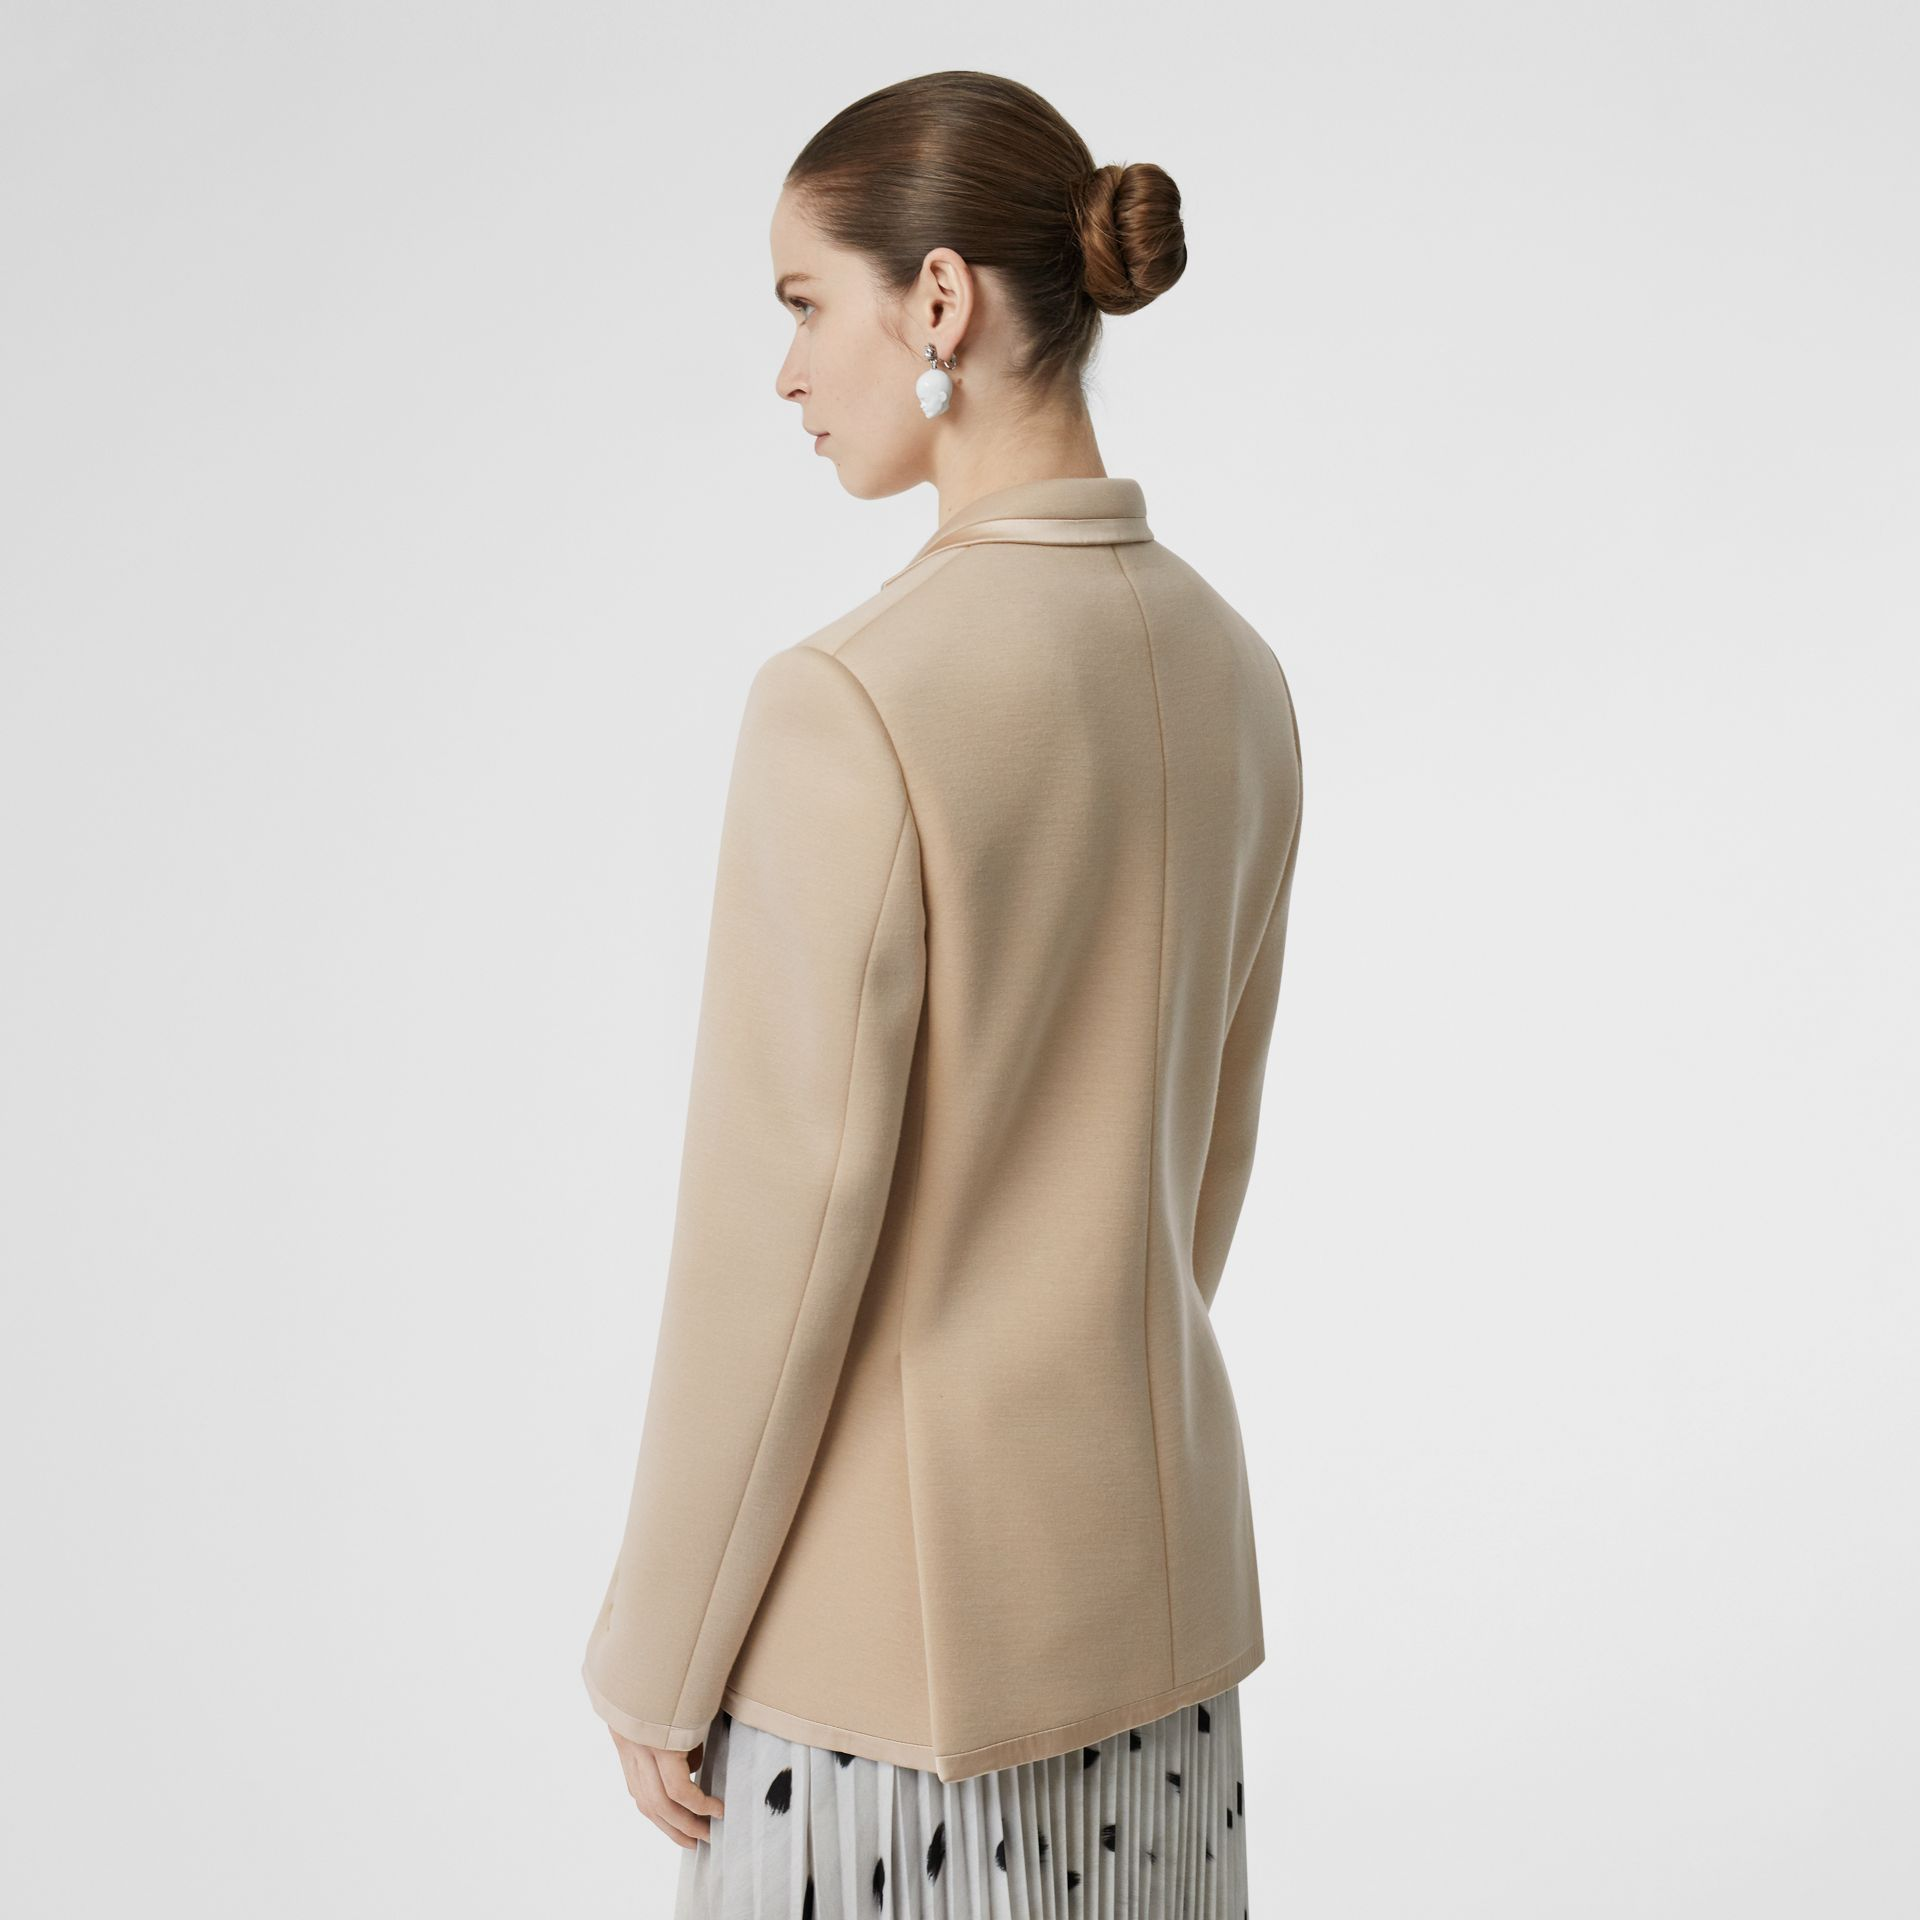 Silk Trim Neoprene Blazer in Teddy Beige - Women | Burberry United States - gallery image 2